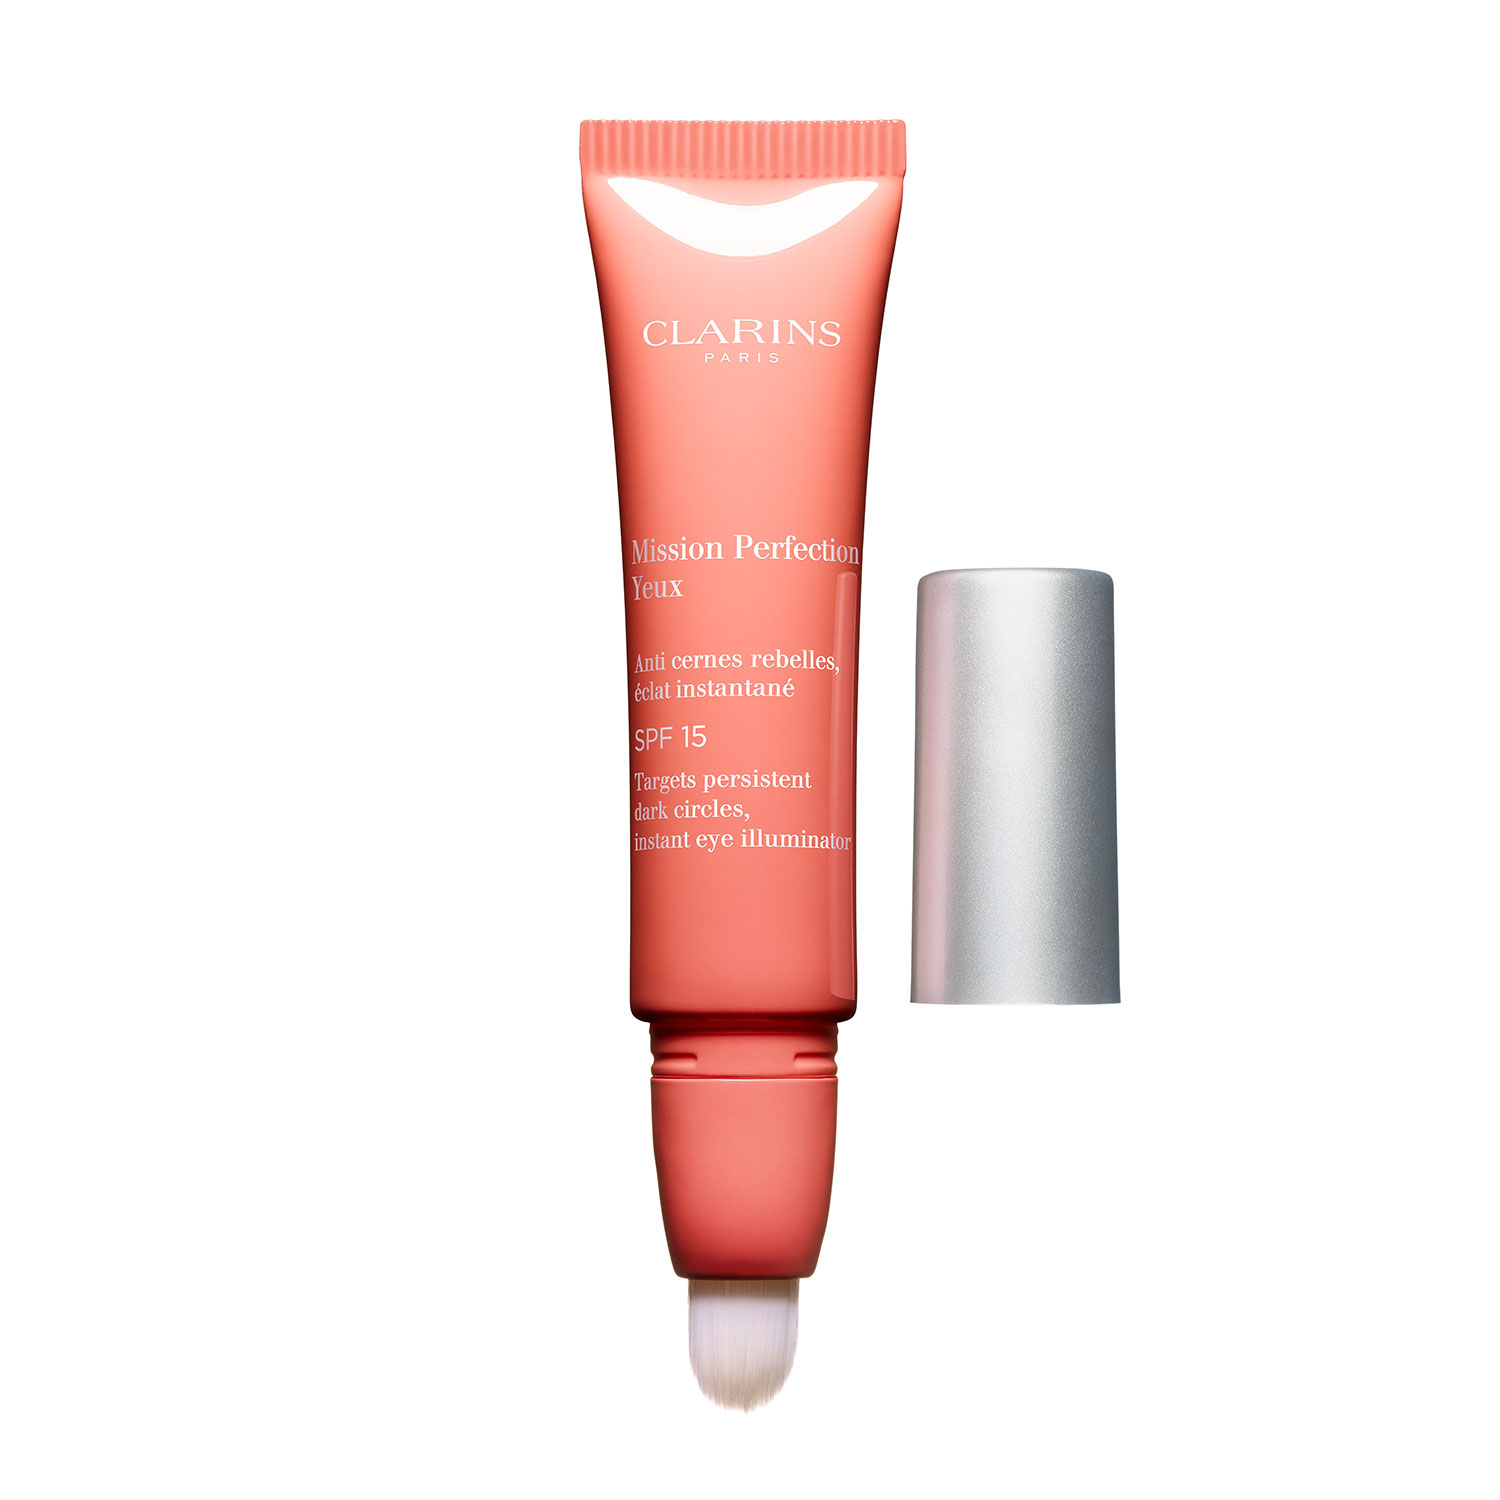 Clarins Skin - Mission Perfection Yeux SPF 15